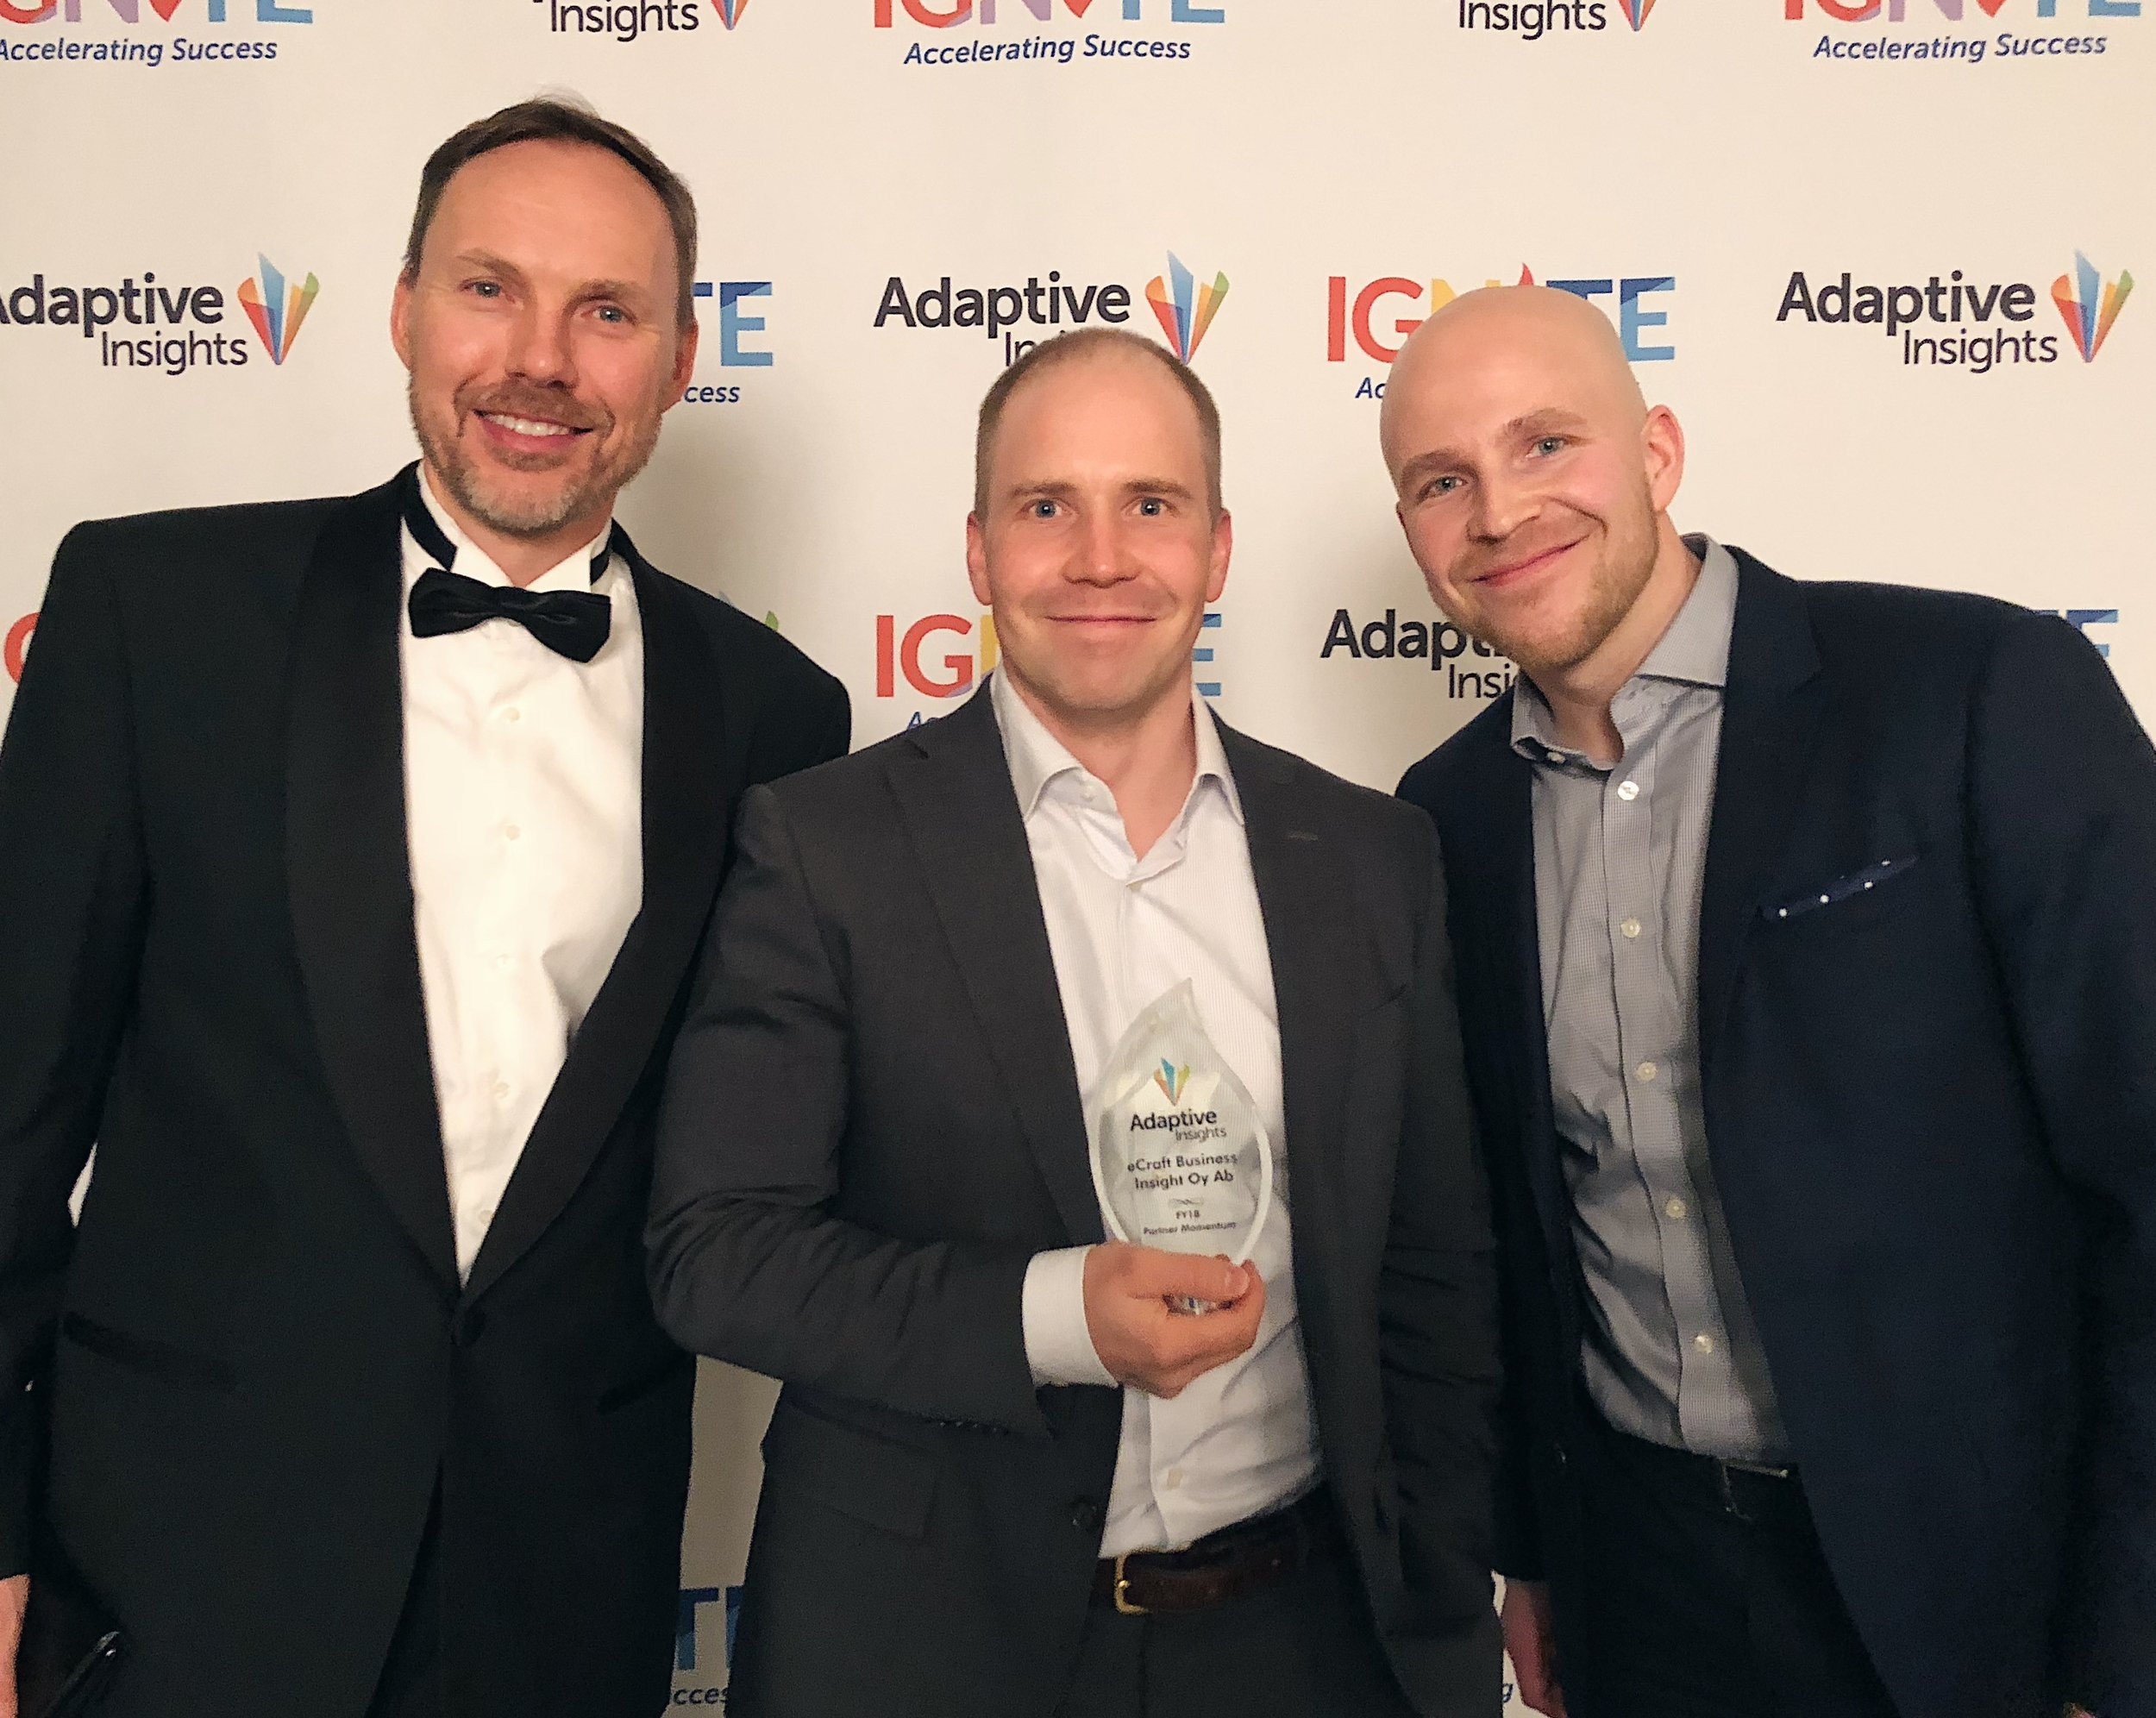 Adaptive Insights Partner of the Region: EMEA and Partner Momentum Awards